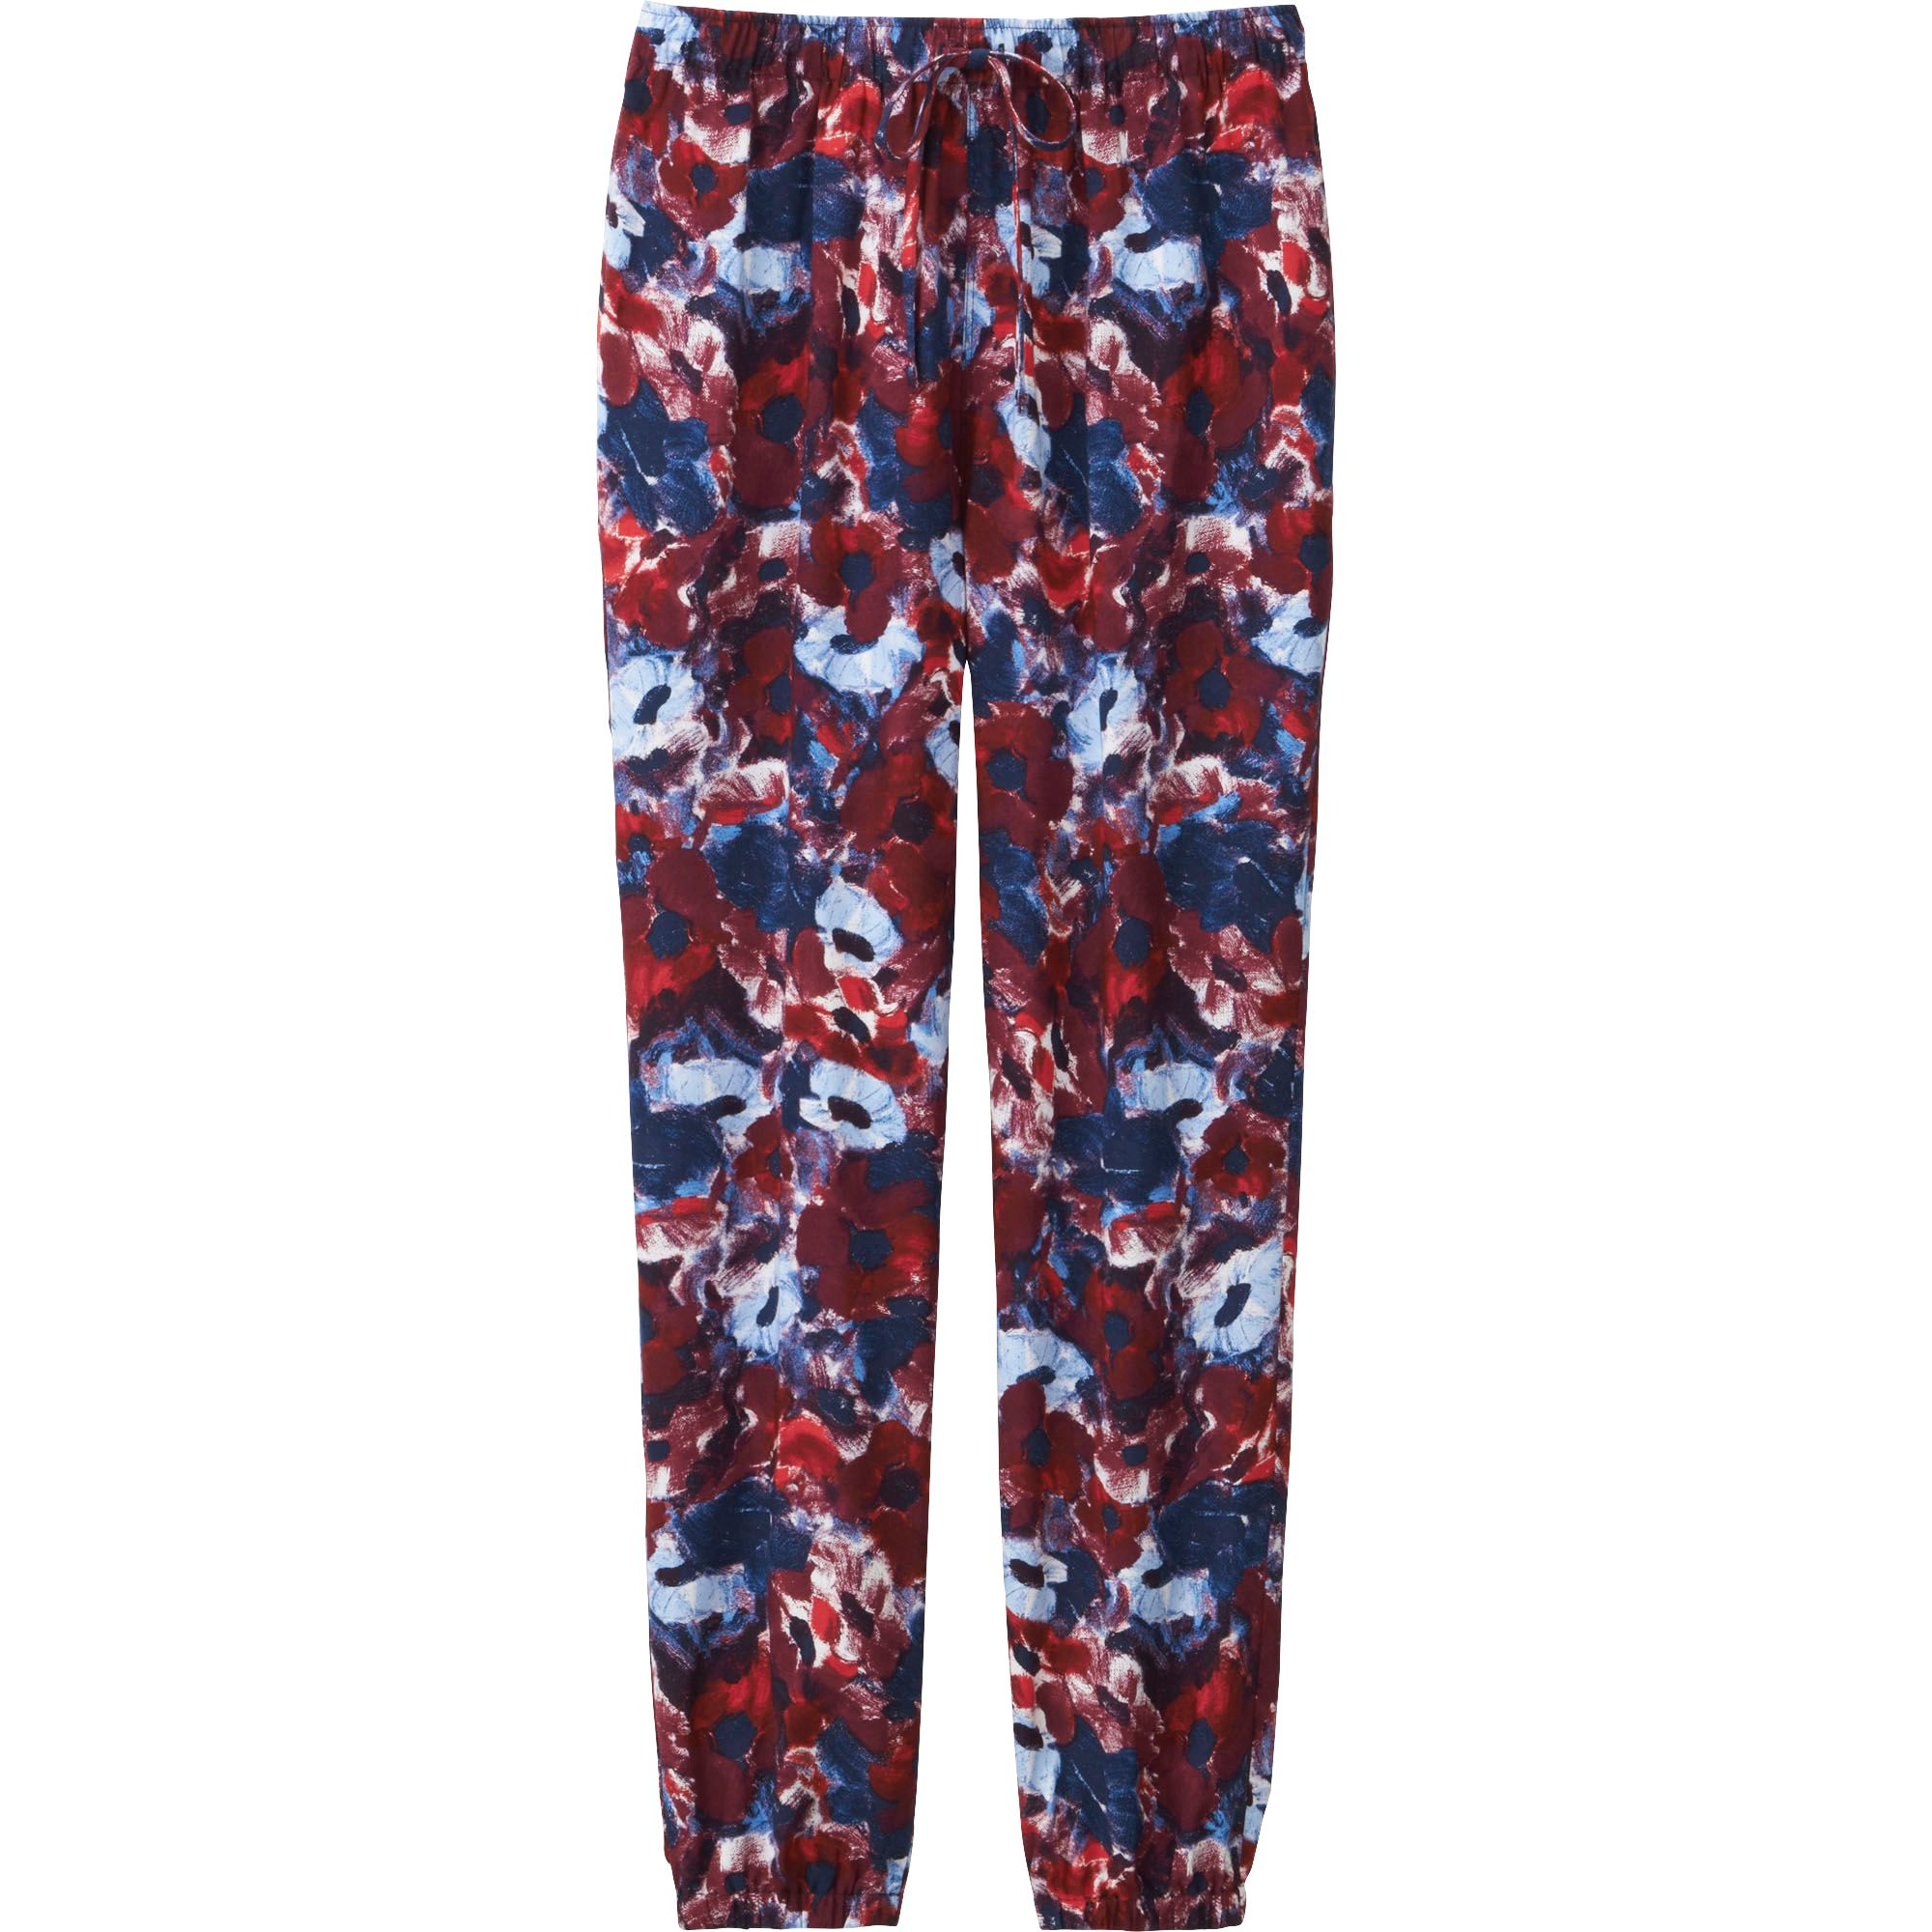 Brilliant Jogger Pants Women Uniqlo  Cool White Jogger Pants Women Uniqlo Photo U2013 Playzoa.com